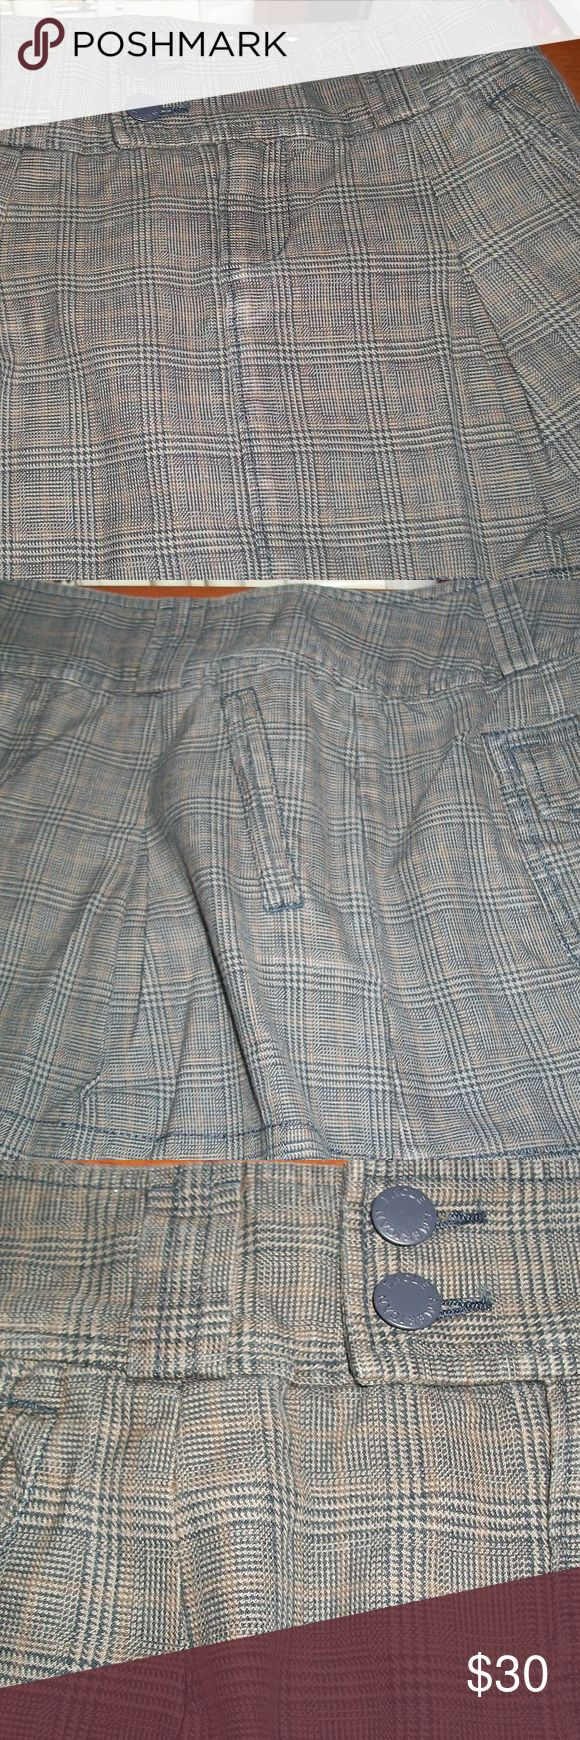 American Eagle Outfitters Gray Plaid Skirt Size 0! American Eagle Outfitters Gray Plaid Skirt Size 0. Great, like new condition (Worn no more than twice) with no rips, tears or stains.  Size 0, front zipper, 2 front pleats, front welt pockets, back pockets with hidden button closure flaps. American Eagle Outfitters Skirts Mini